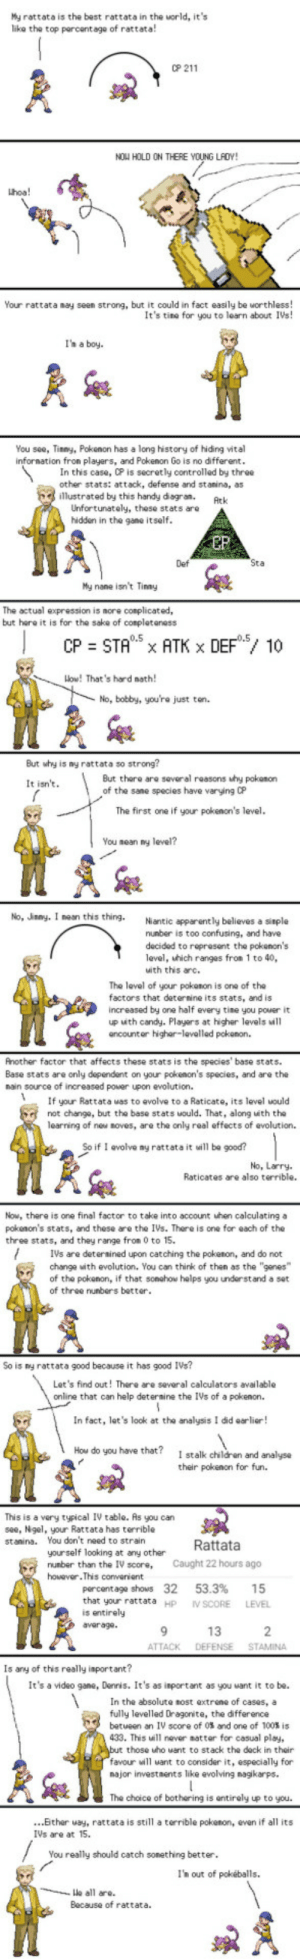 "Professor Oak explains IVs in Go: My rattata is the best rattata in the world, its  like the top parcentage of rattata!  0P 211  NOW HOLD ON THERE YOUNG LAOY!  hoa!  Your rattata may seen strong, but it could in fact easily be worthless!  It's tine for you to learn about IVs!  I'h a boy  You see, Tinmy, Pokenon has a long history of hiding vital  infornation fron players, and Pokenon Go is no different  In this case, CP is secretly controlled by three  other stats: attack, defense and stanina, as  illustrated by this handy diegran.Atk  Unfortunately, these stats aro  hidden in the gane  itself  EP  Def  My nane isnt Tiny  The actual expression is nore conplicated,  but hare it is for the sake of conpleteness  Wow! That's hard nath  No, bobby, you're just ton.  But why is ny rattata so strong?  But there are several reasons why pokenon  of the sane species have varying CP  It isn't  The first one if your pokenon's level.  You nean y  No, Jnmy. I nean this thing. Niantic apparently believes a  nunber is too confusing, and have  decided to reprosent the pokenon's  level, hich ranges from 1 to 40,  uith this arc.  The leval of your pokanon is one of the  factors that deternine its stats, and is  increased by one half every tine you power it  up with candy. Playars at higher levels will  ancounter higher-levelled pokenon.  Another factor that affects these stats is the species' base stats  Base stats are only dependent on your pokenon's species, and are the  nain source of increased power upon evolution.  Ifyu Rattata uas to avolve to a Raticate, its level would  not change, but the base stats would. That, along with the  learning of new noves, are the only real effects of evolution.  So if 1 evolve ny rattata it will be good?  No, Larry  Raticates are also terrible.  Now, there is one final factor to take into account uhen calculating a  pokenon's stats, and these are the IVs. There is one for each of the  three stats, and they range fron 0 to 15.  IVs are detersined upon catching the pokenon, and do not  changa with evolution. You can think of then as the ""gones  of the pokonon, if that sonahow helps you underst and a set  of three nunbers better  So is my rattata good because it has good IVs?  Let's find out! There are several calculators available  online that can help deteraine the IVs of a pokenon.  In fact, let's look at the analysis I did earlier!  Hou do you have that?  I stalk childran and analyse  their pokenon for fun.  s is a very typical IV table. As  see, Ngel, your Rattata has terrible  stanina. You don't need to strain  you can  Rattata  yourself looking at any other  number than the IV score, Caught 22 hours ago  however.This converient  percentage shows 32  that your rattata Hp  is entirely  average  53.3%  IV SCORE  LEVEL  13  ATTACK DEFENSE STAMINA  Is any of this really isportant?  It's a video gane, Dennis. It's as inportant as you want it to be.  In the absolute nost extrene of cases, a  fully levelled Dragonite, the difference  betueen an IV score of 0%and one of 100% is  33. This ill nover natter for casual play,  those uho want to stack the deck in their  favour wll uant to consider it, especially for  najor investments like evolving nagikarps.  The choice of bothering is entirely up to you.  ...Bther uay, rattata is still a terrible pokenon, even if all its  IVs are at 15.  You really should catch sonething better  I'n out of pokéballs.  le all are.  Because of rattata Professor Oak explains IVs in Go"